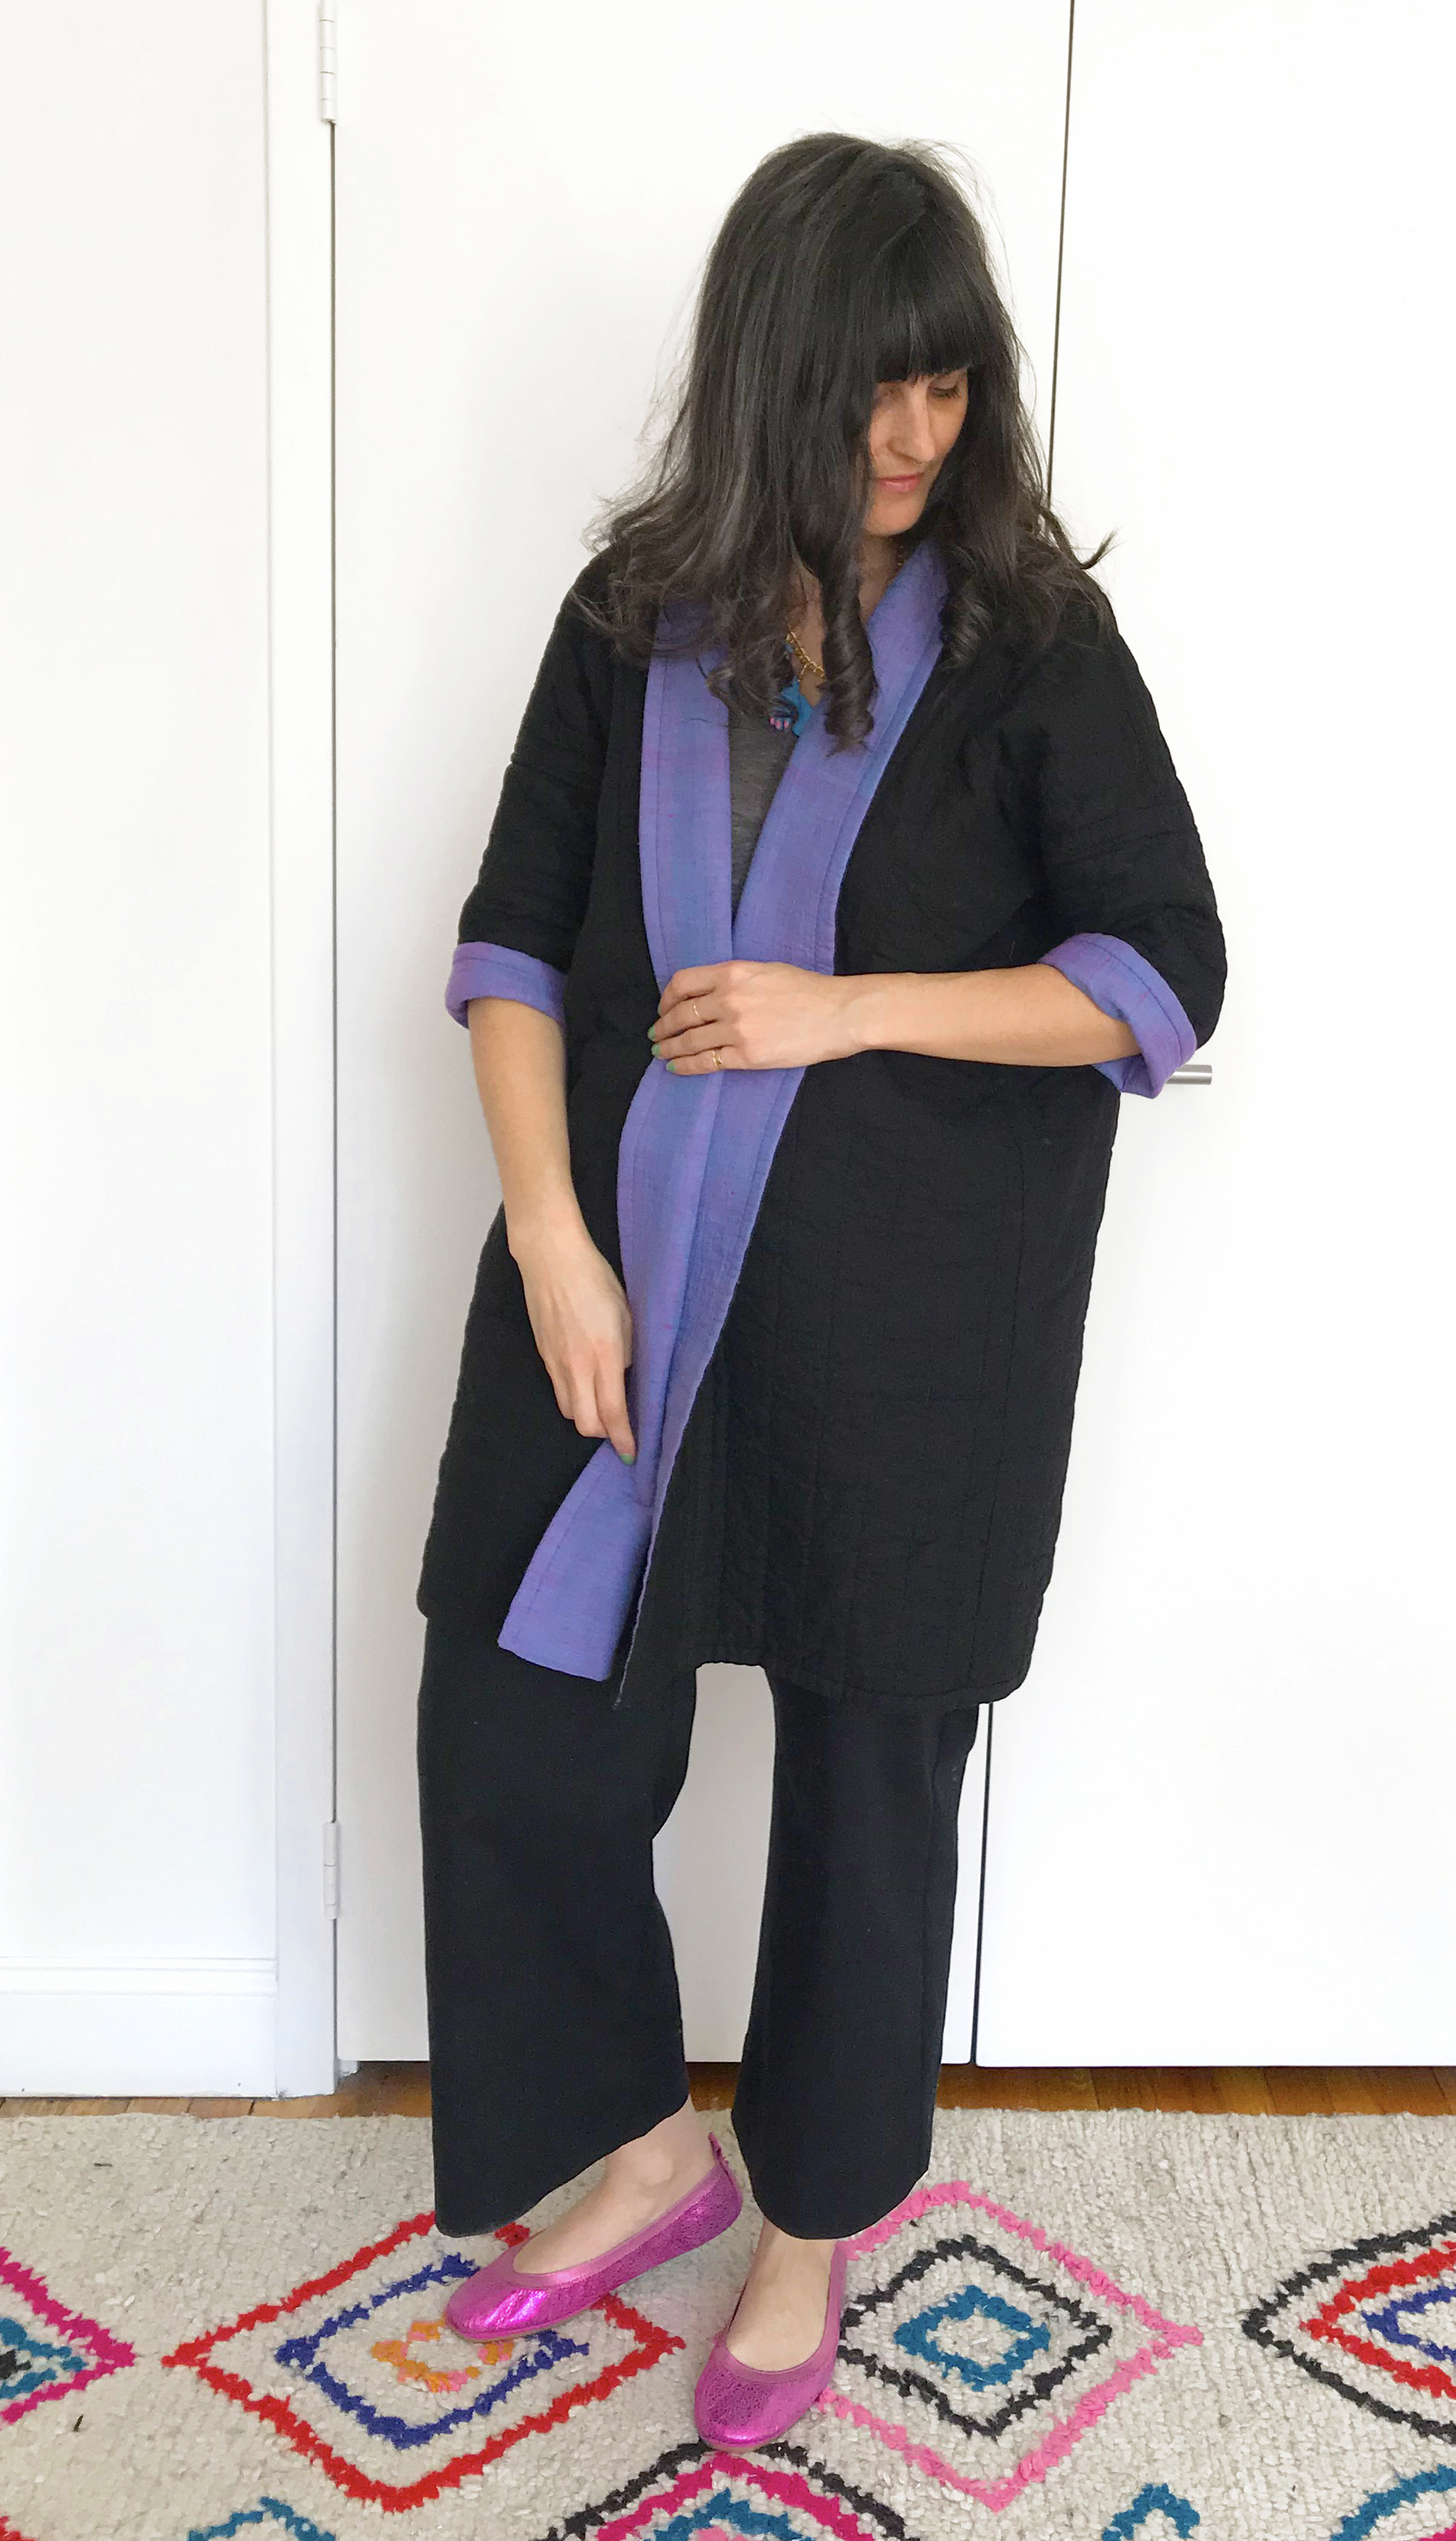 This side is solid black, but you can roll up the sleeves and fold back the collar for blue details.